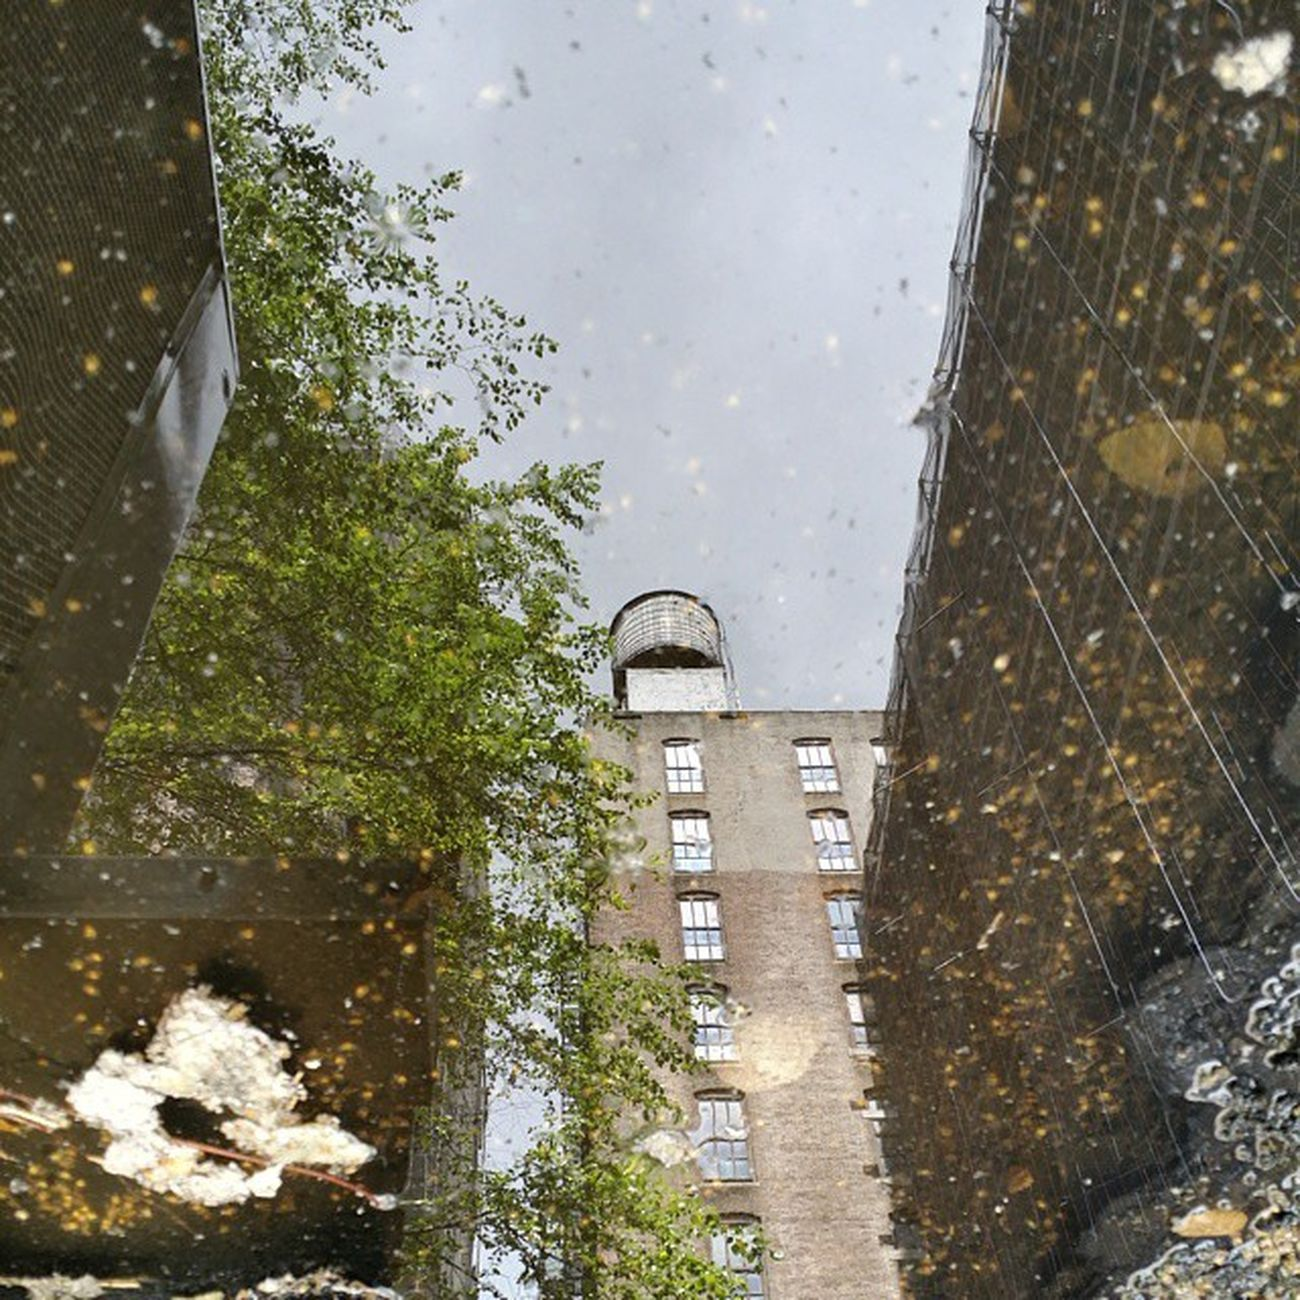 Dirty roof puddle reflection NYC Watertower Watertank Puddle rain roof reflection nofilter picoftheday tree buildings construction